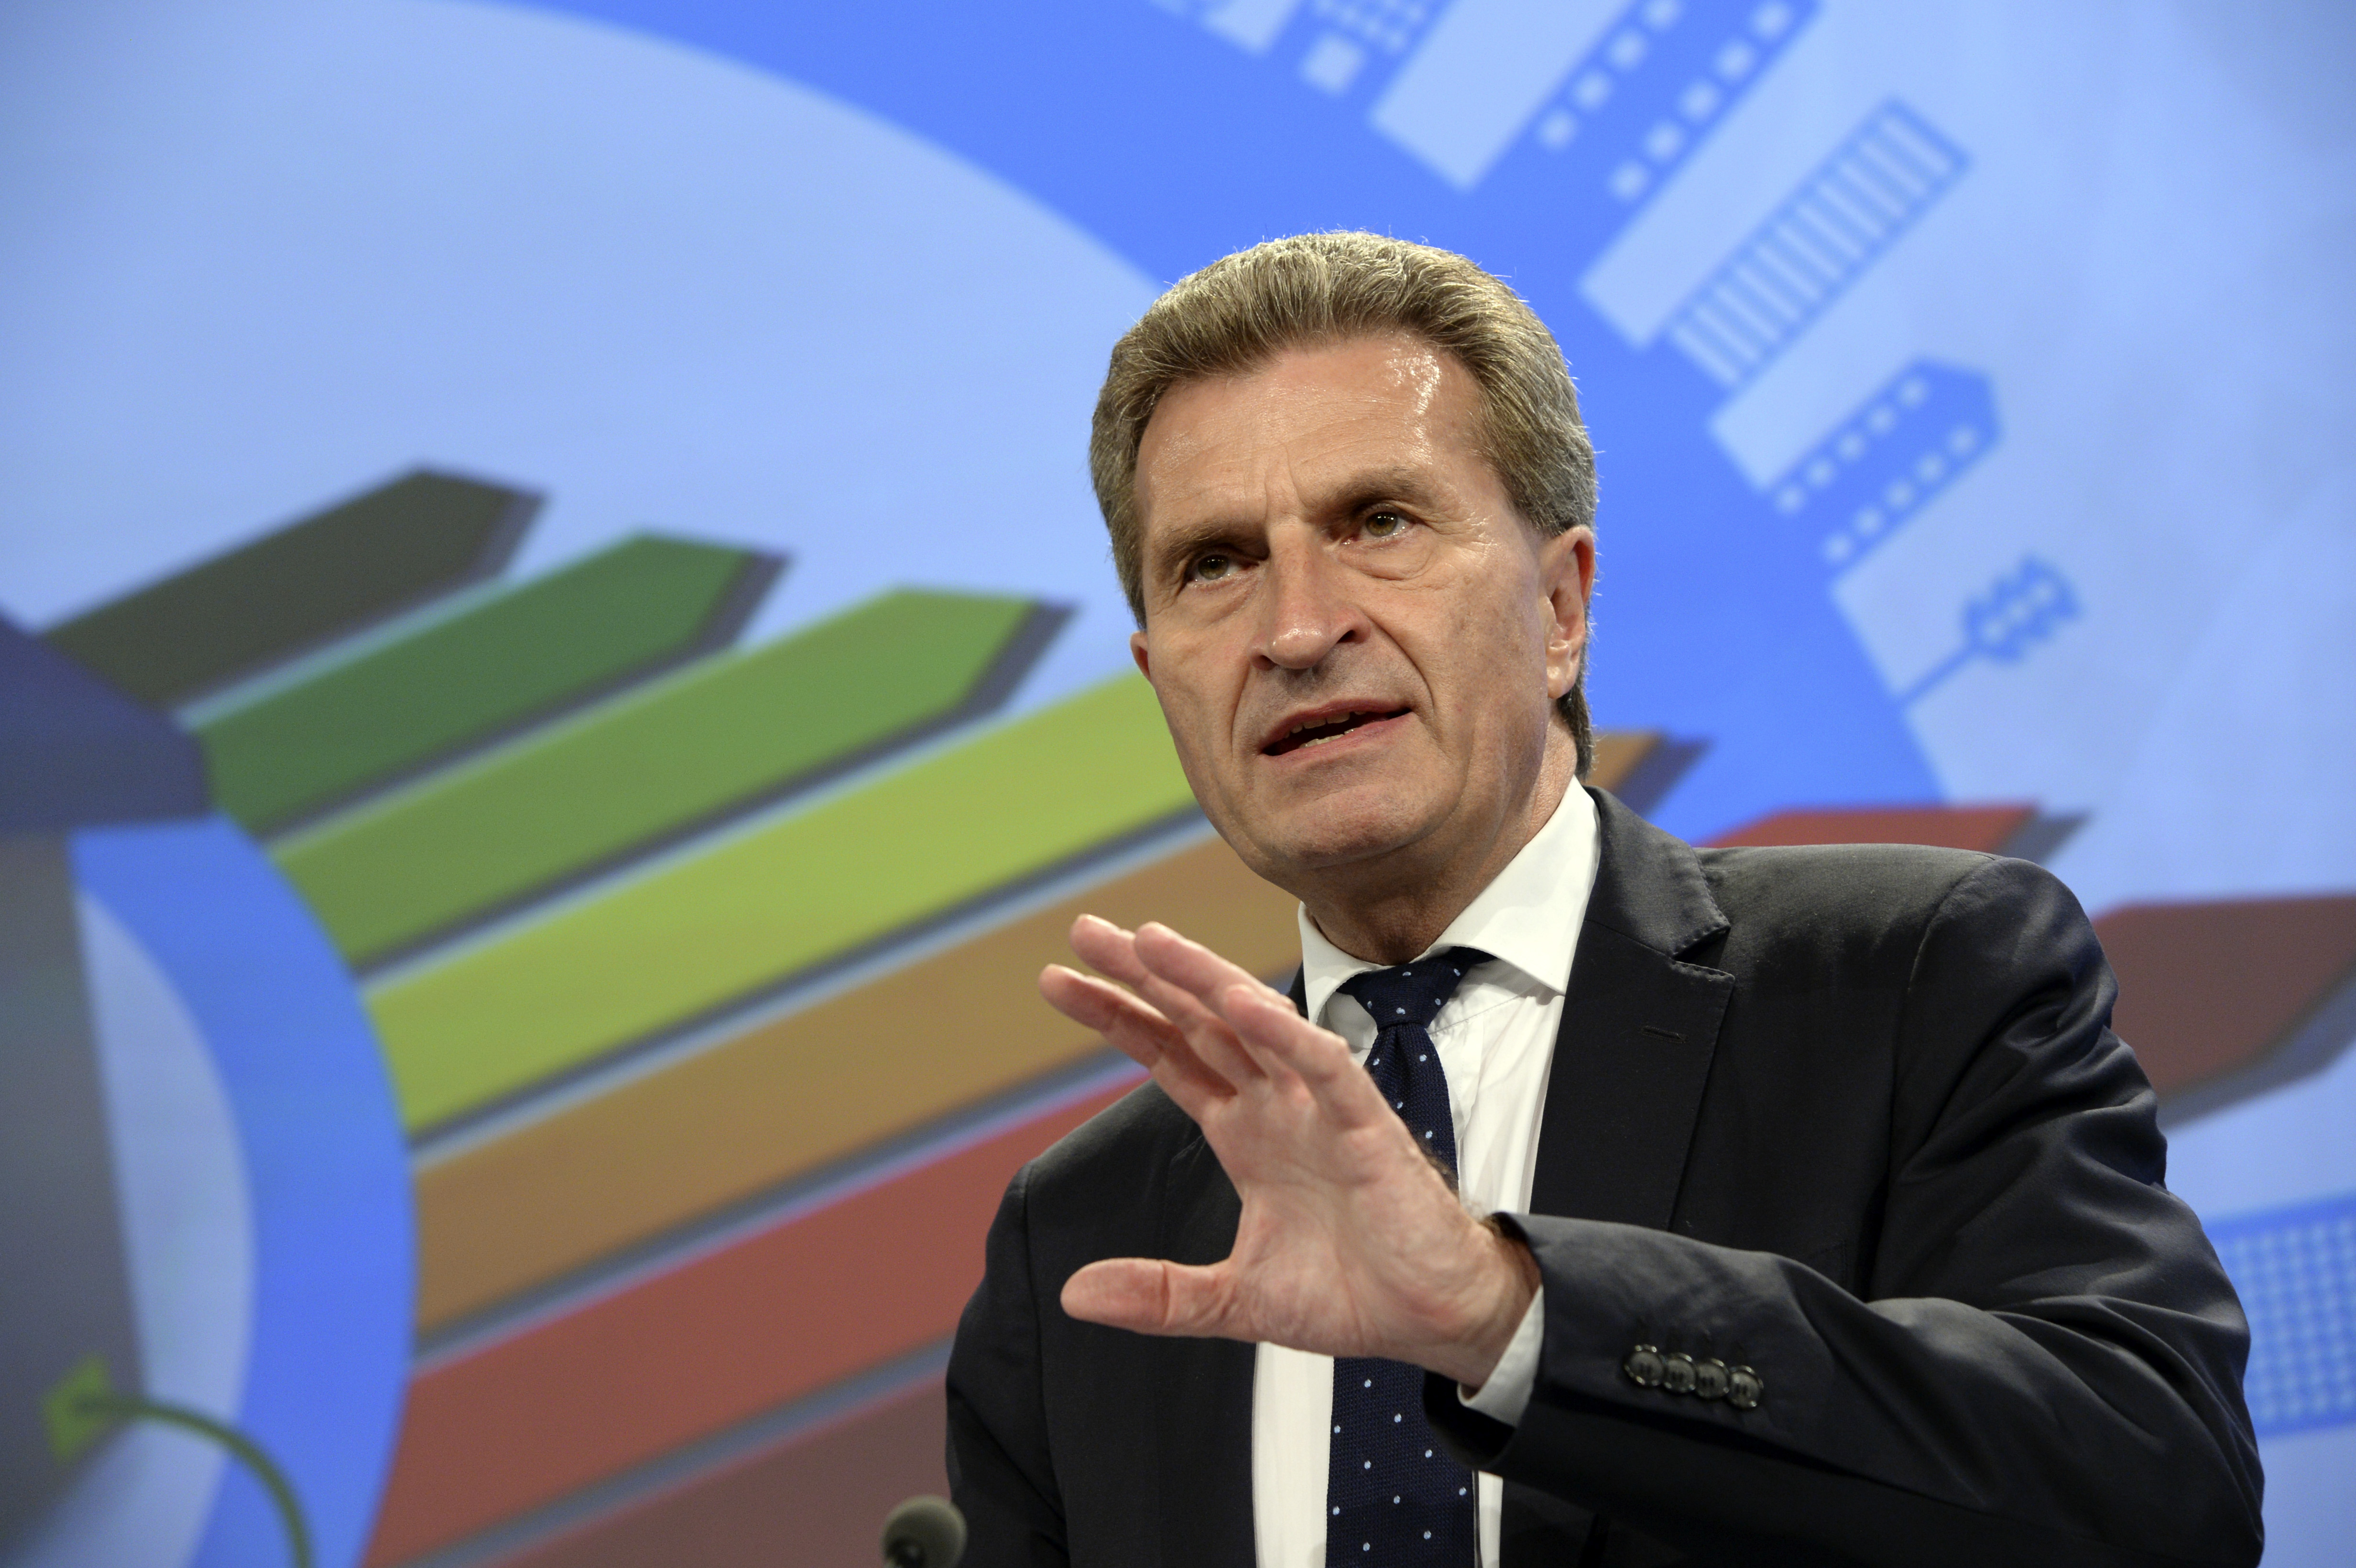 Günther Oettinger, German Commissioner for energy, 2009-2014 [European Commission]